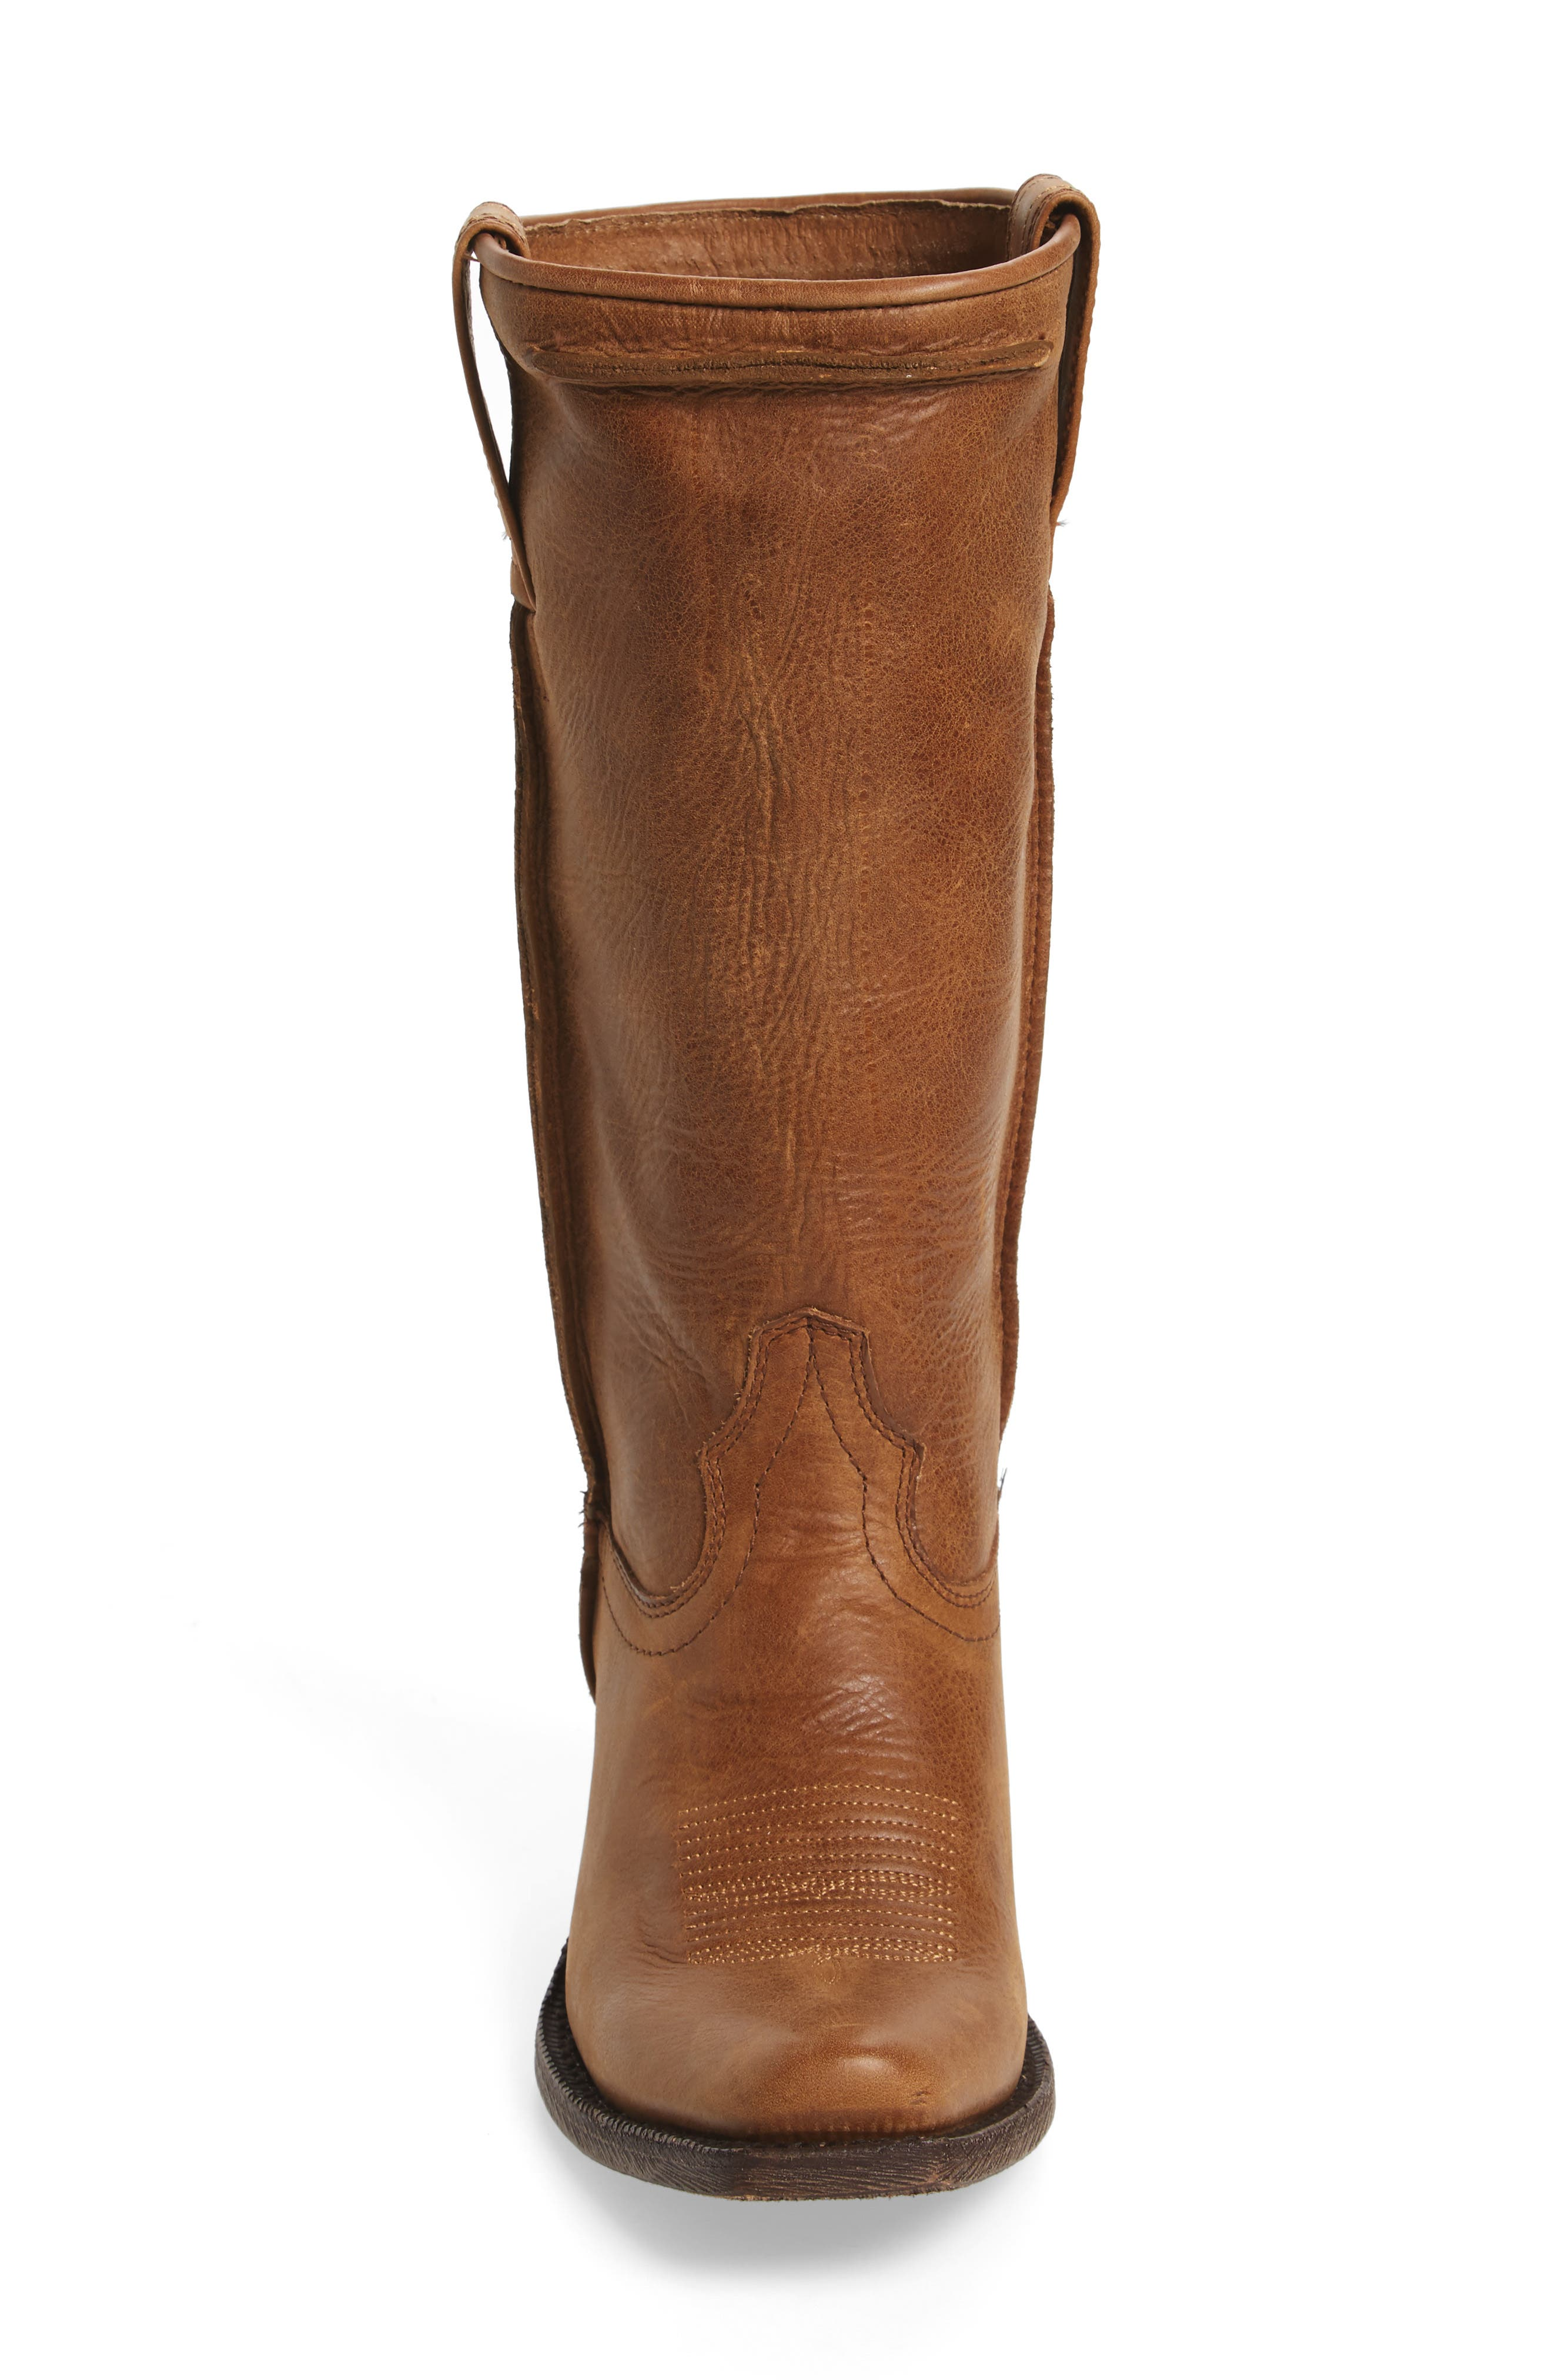 Rowan Stovepipe Western Boot,                             Alternate thumbnail 4, color,                             Southern Tan Leather